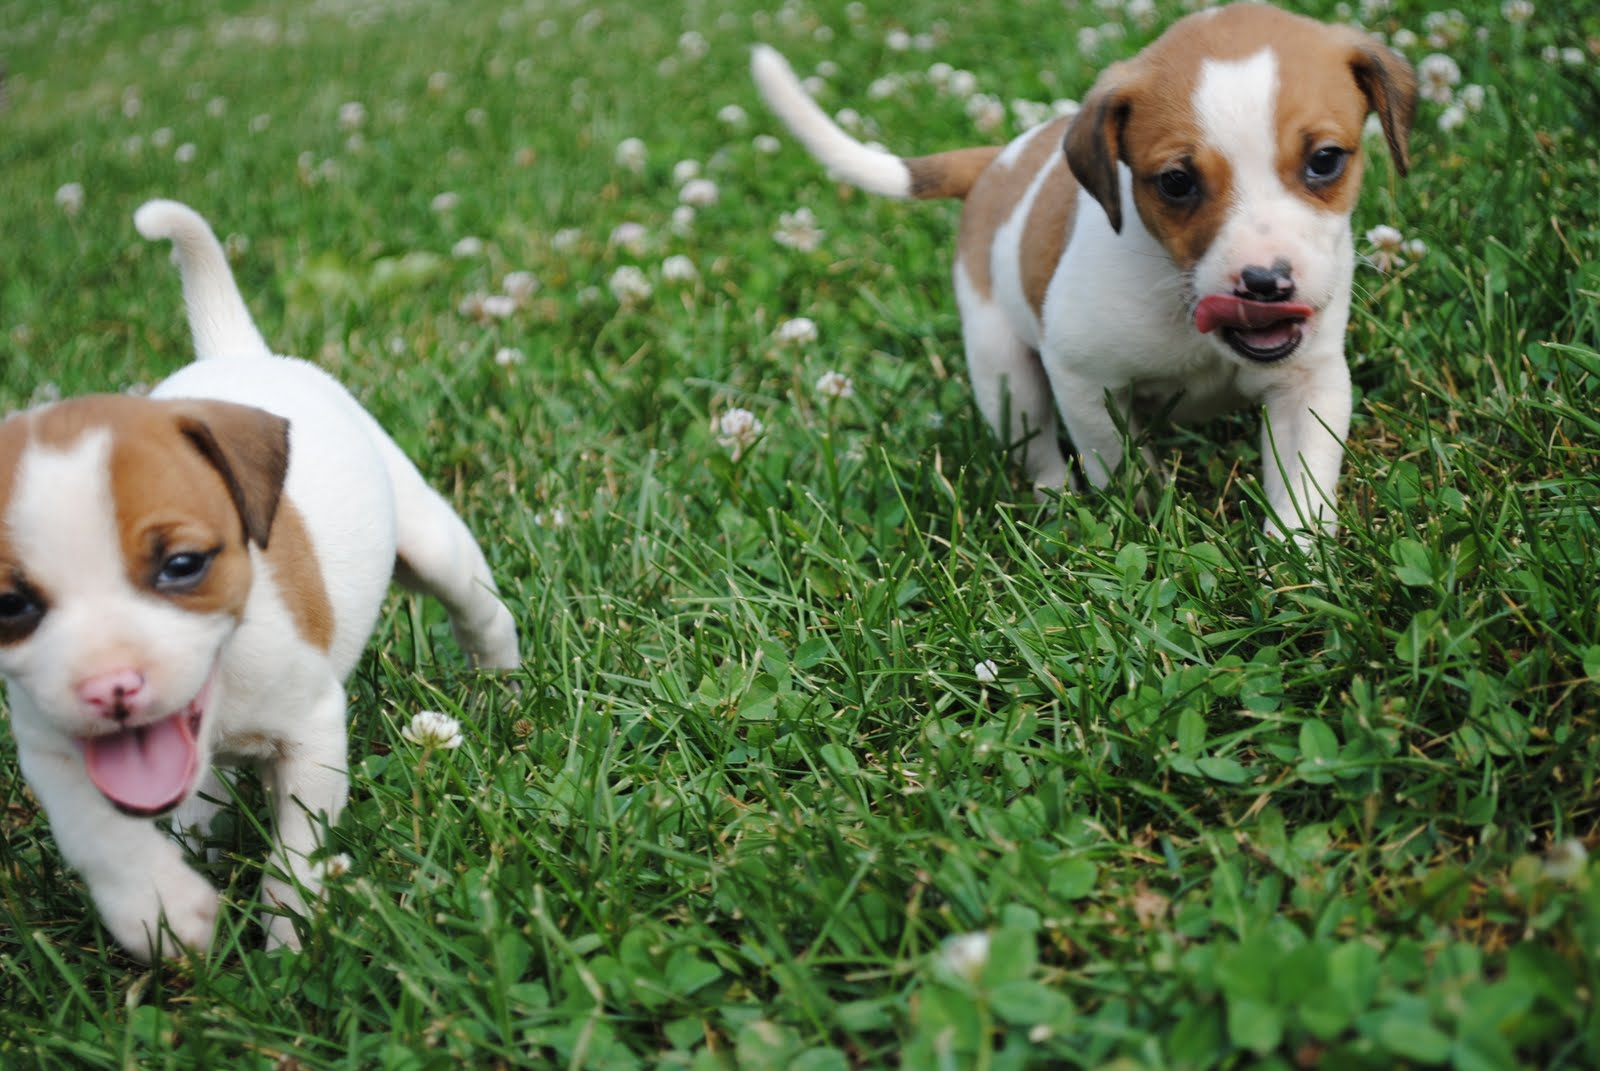 Mountain Feist Puppy | Dog Breeds Picture